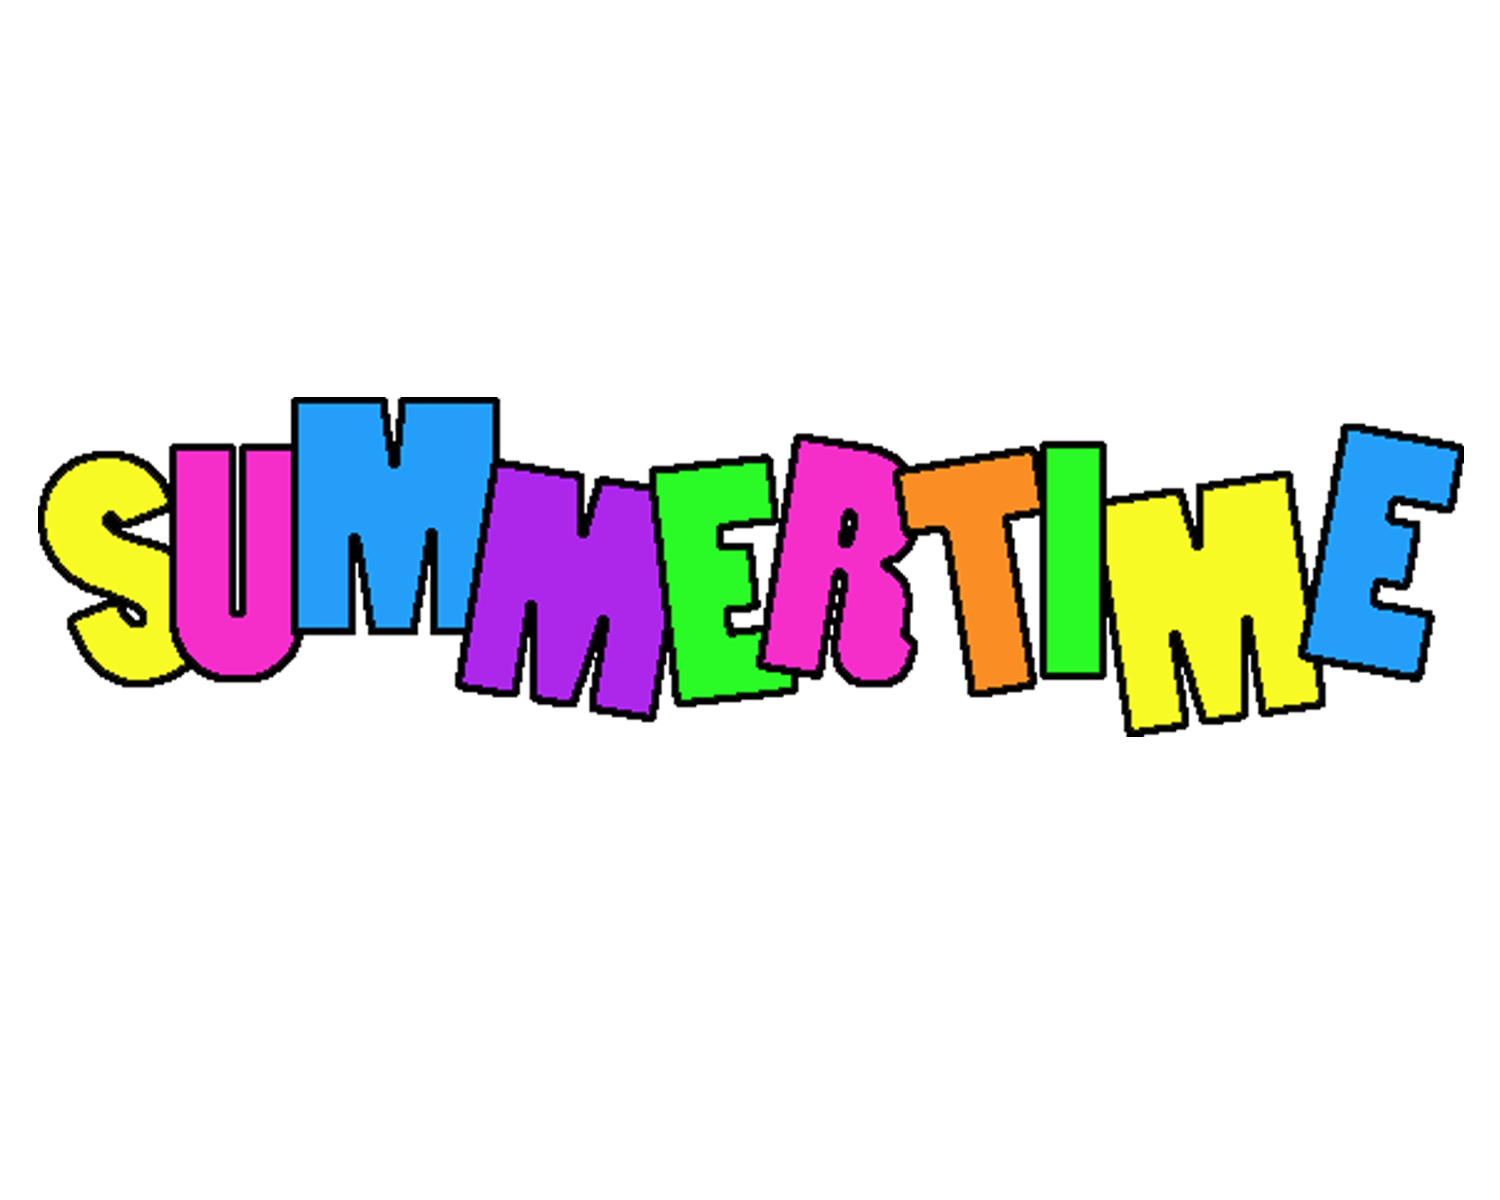 Summertime Clipart Free Clipart Images